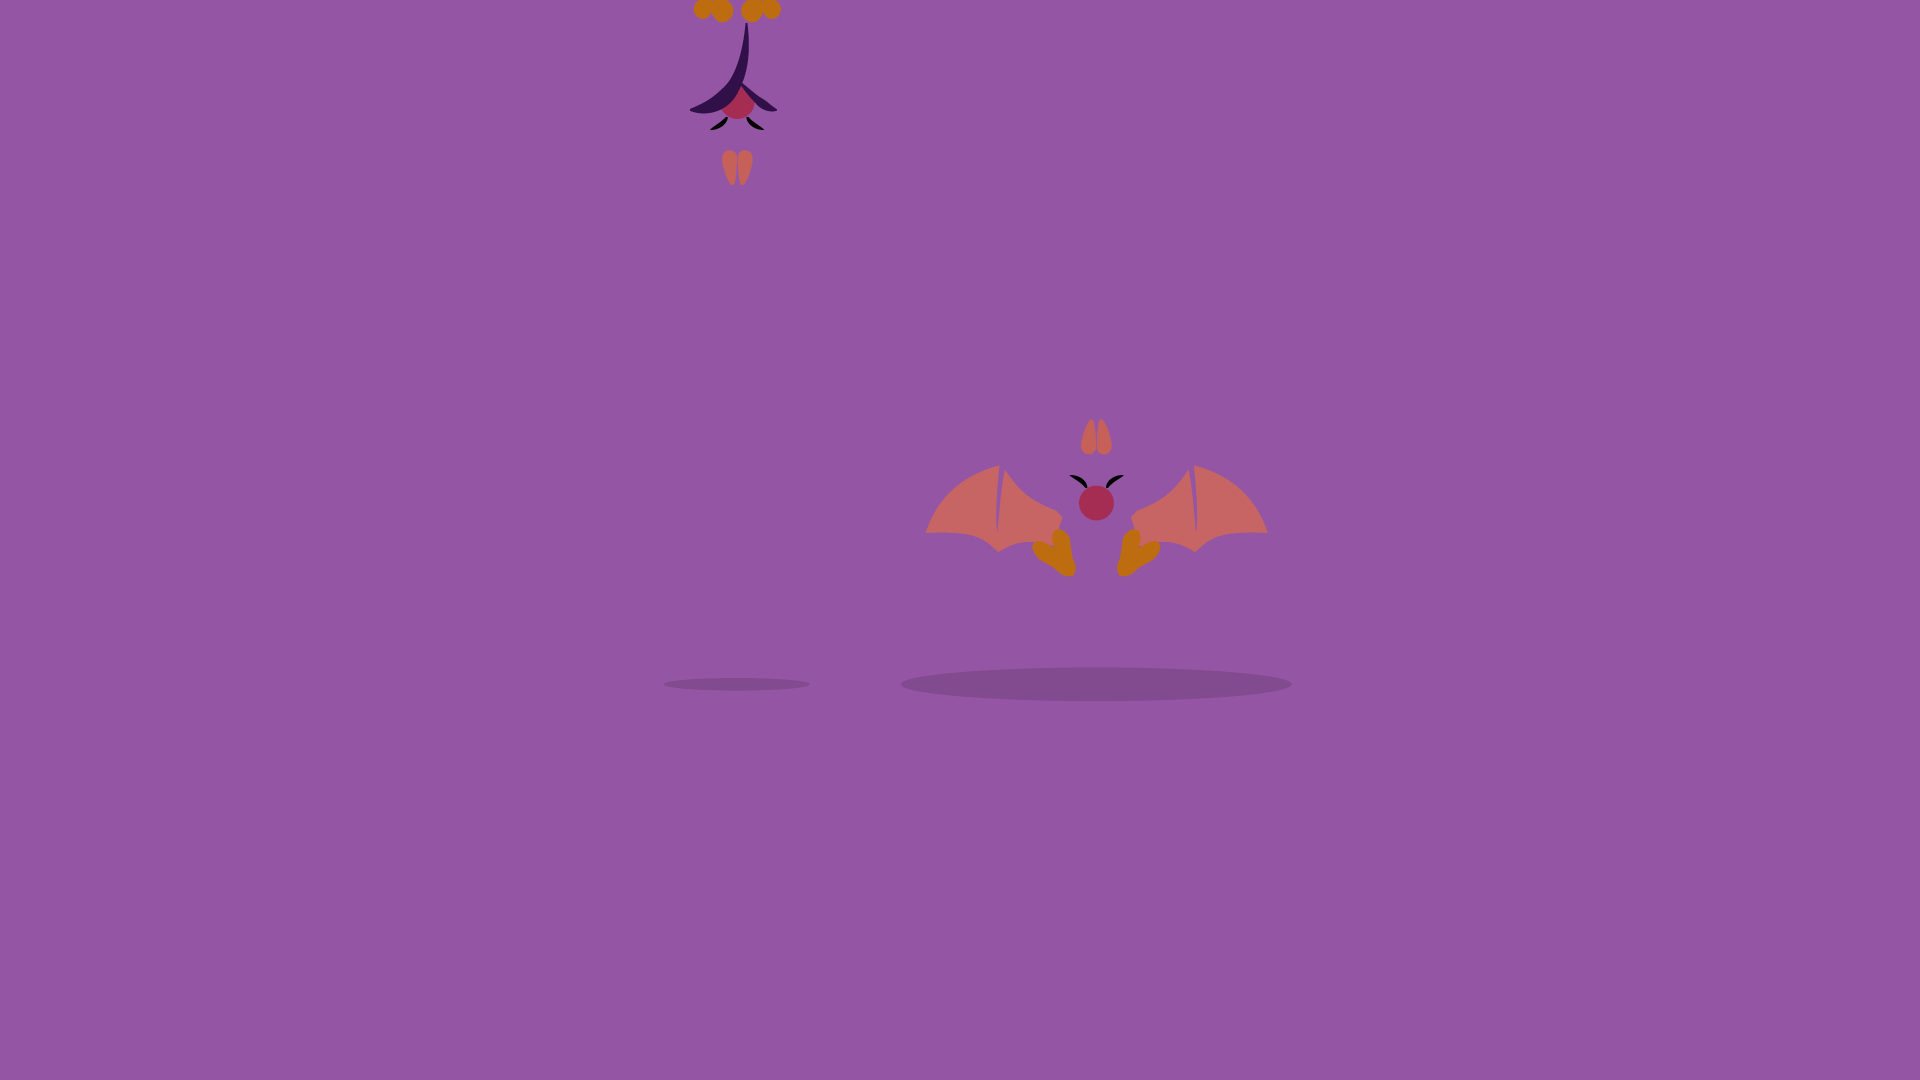 Purple desktop wallpaper with a Swooper flying in the middle and another one hanging from the ceiling.